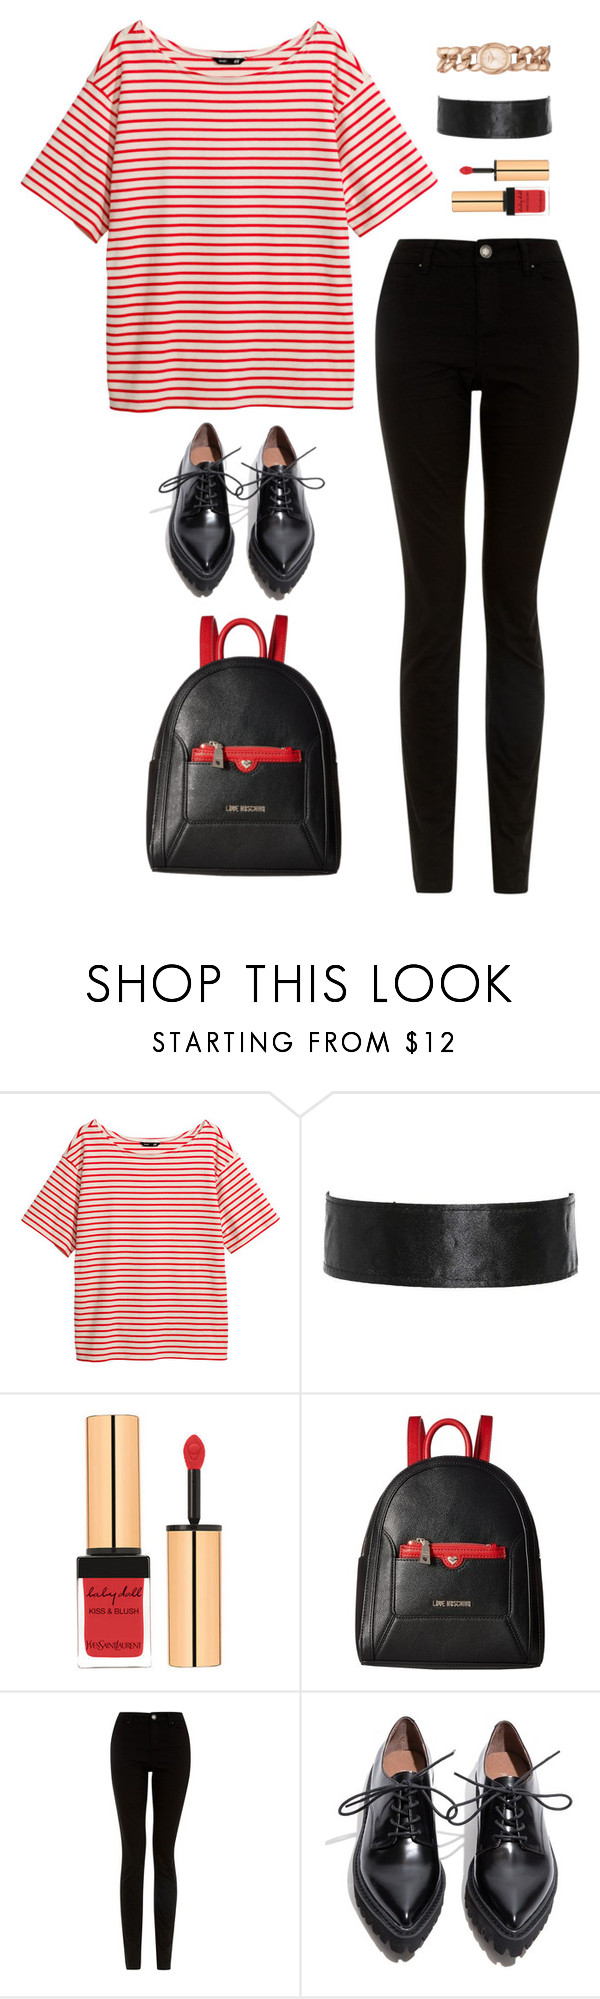 """Unbenannt #1716"" by uniqueautumn ❤ liked on Polyvore featuring H&M, Yves Saint Laurent, Love Moschino, Jeffrey Campbell and Topshop"